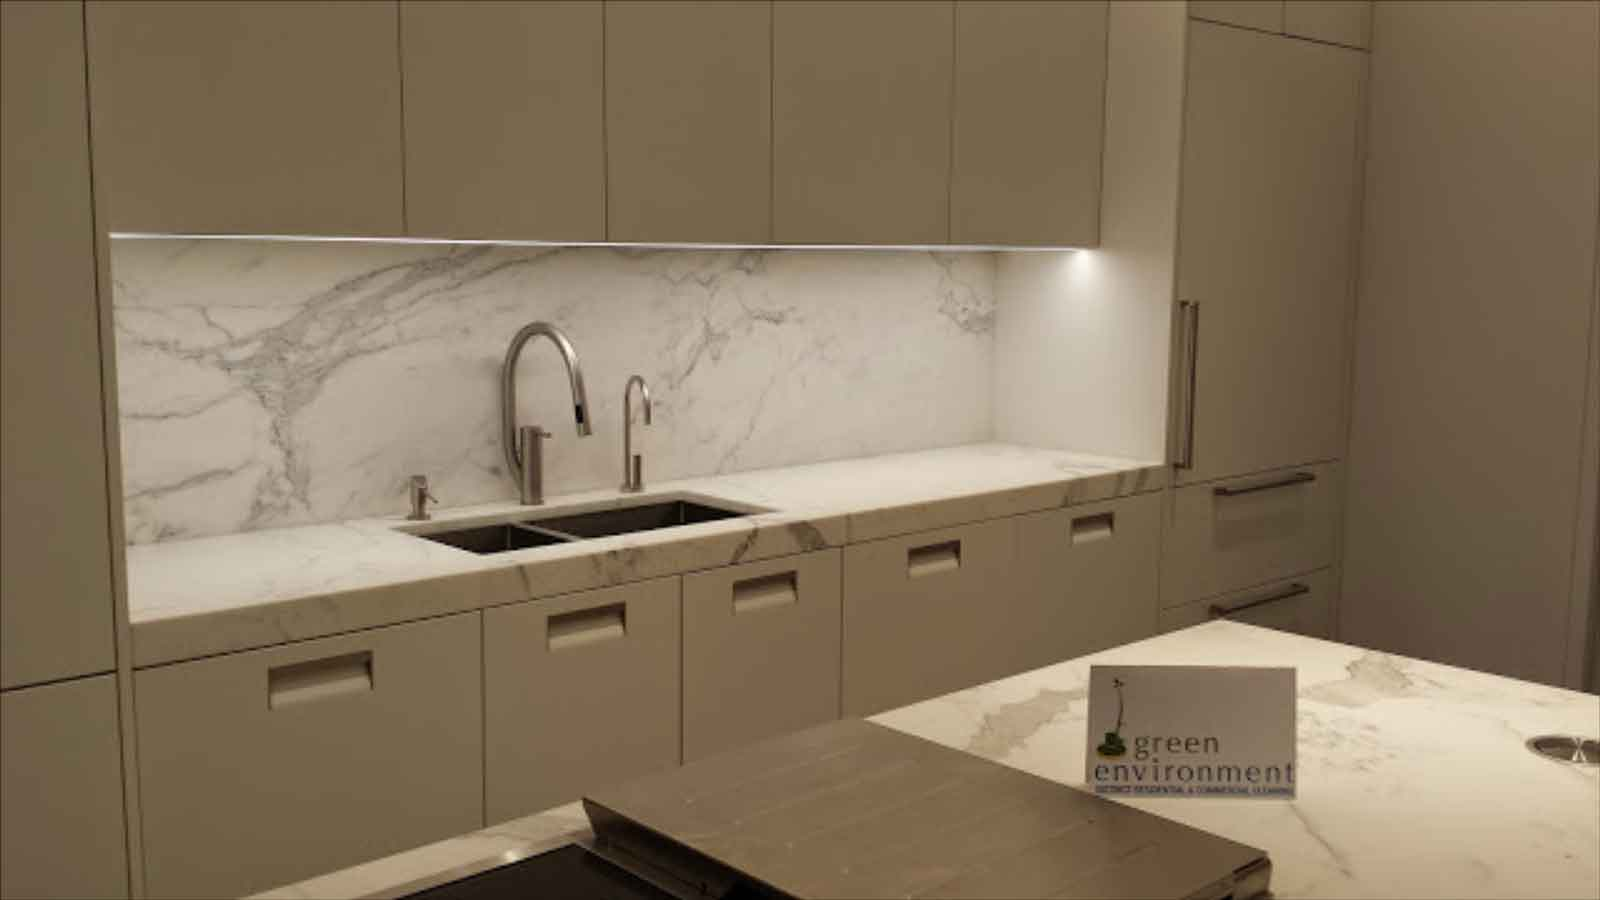 Kitchen with marble backsplash and counter.